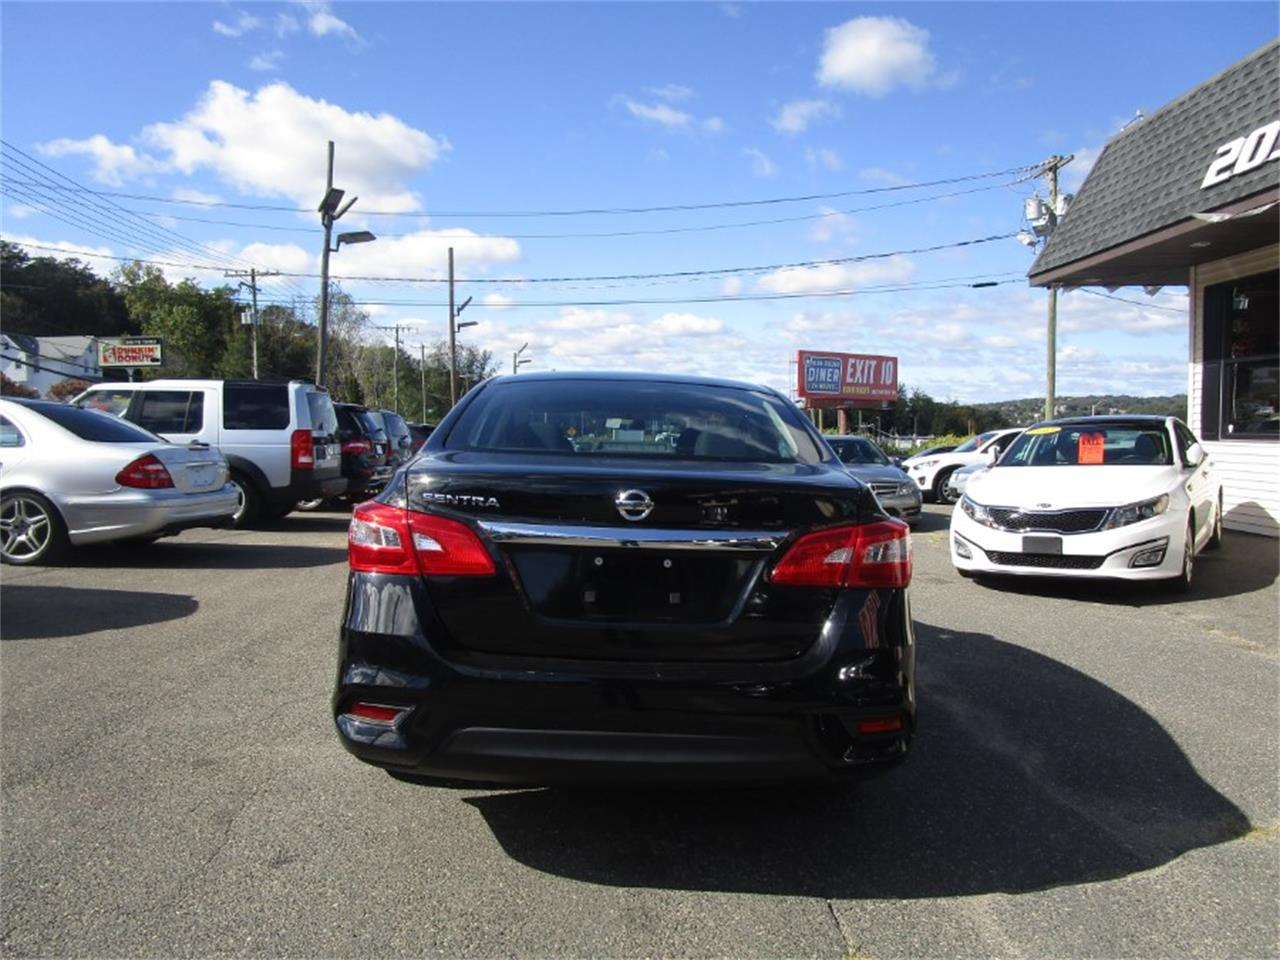 2016 Nissan Sentra (CC-1294509) for sale in Waterbury, Connecticut